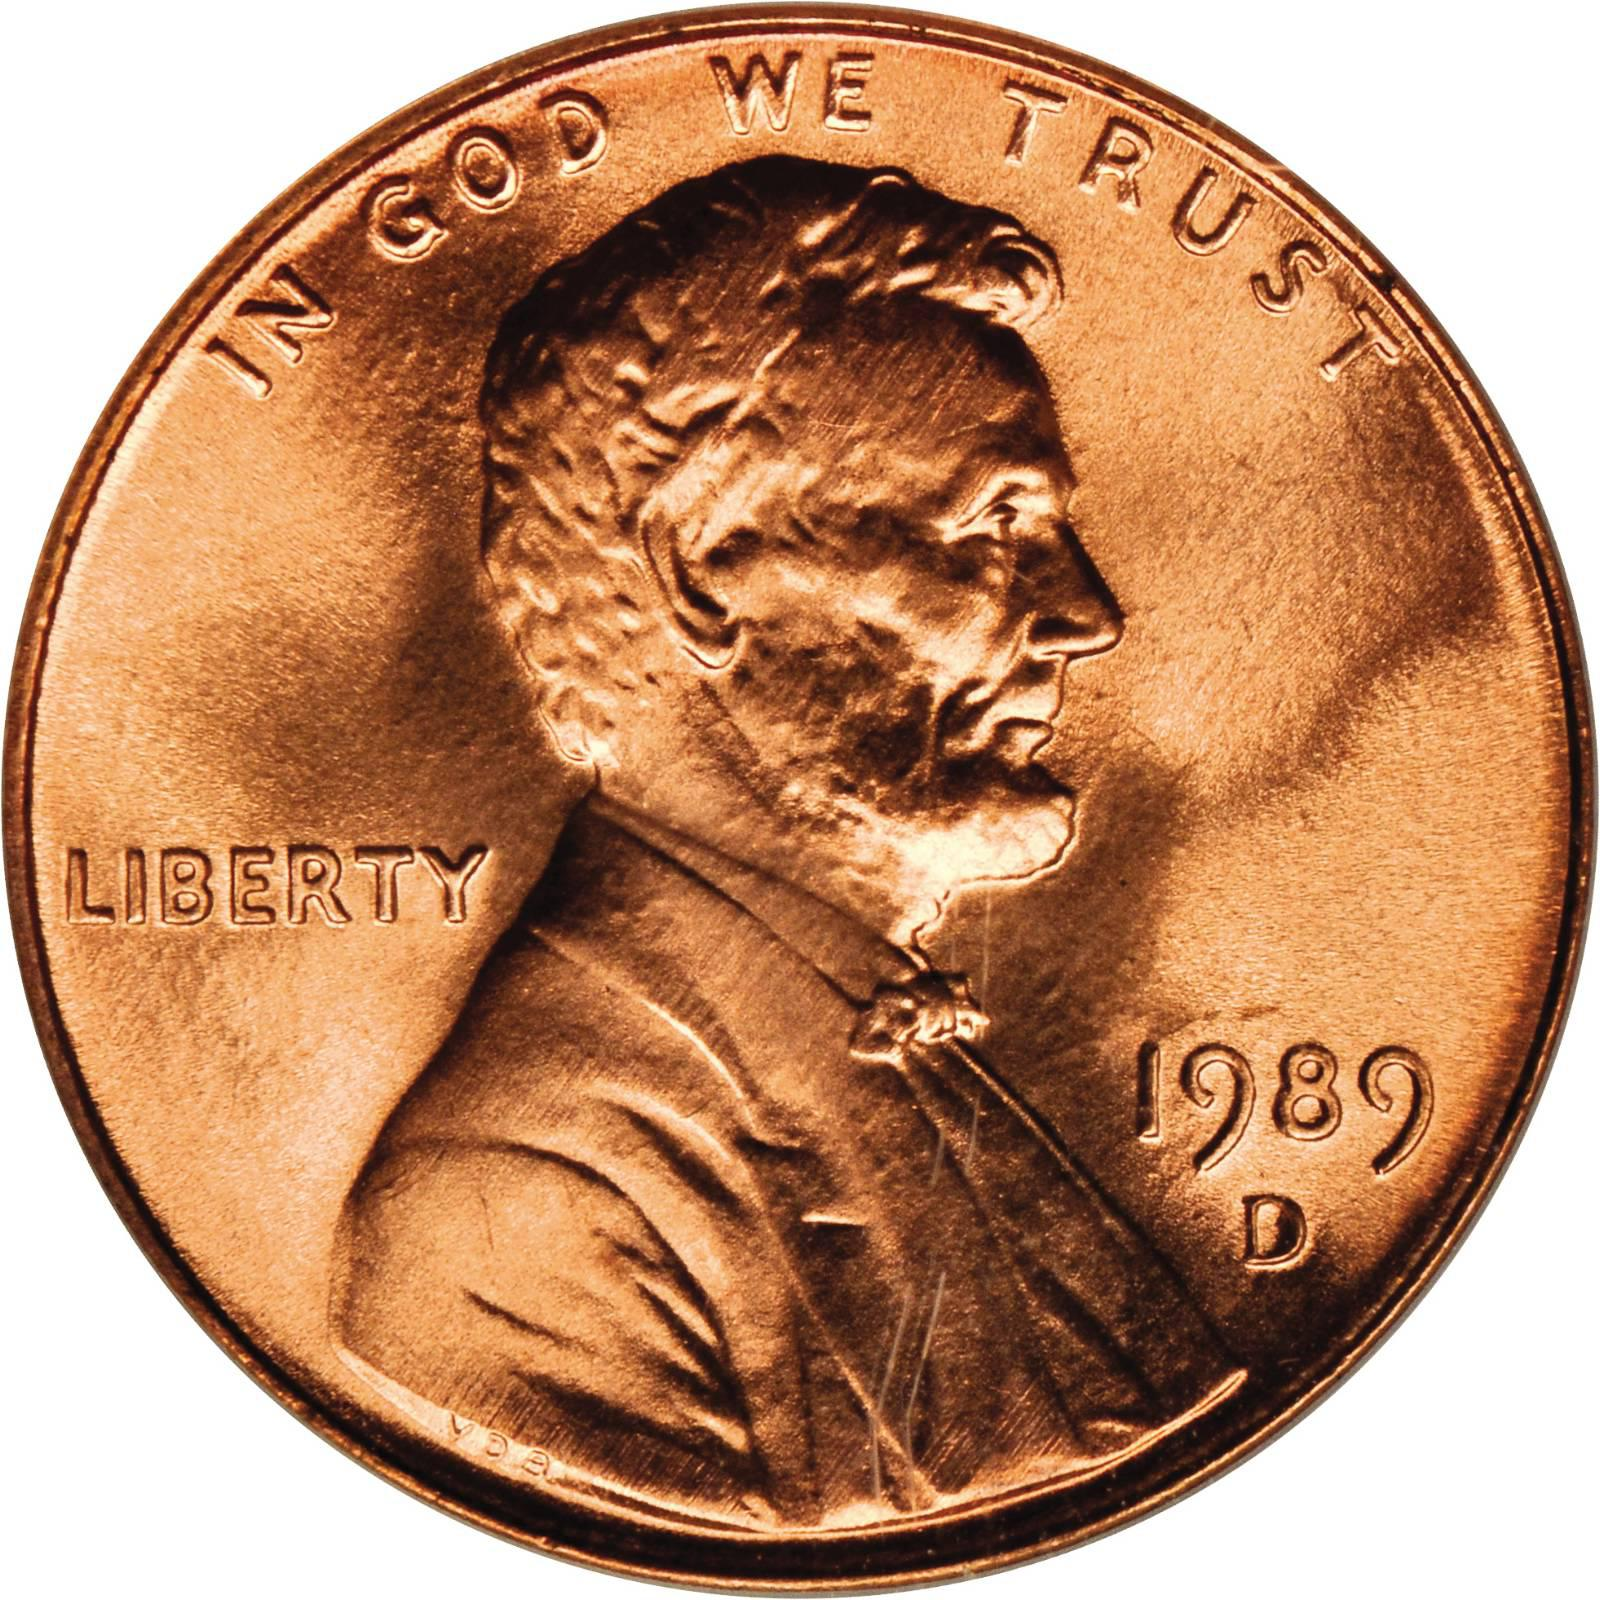 Value Of D Lincoln Cents